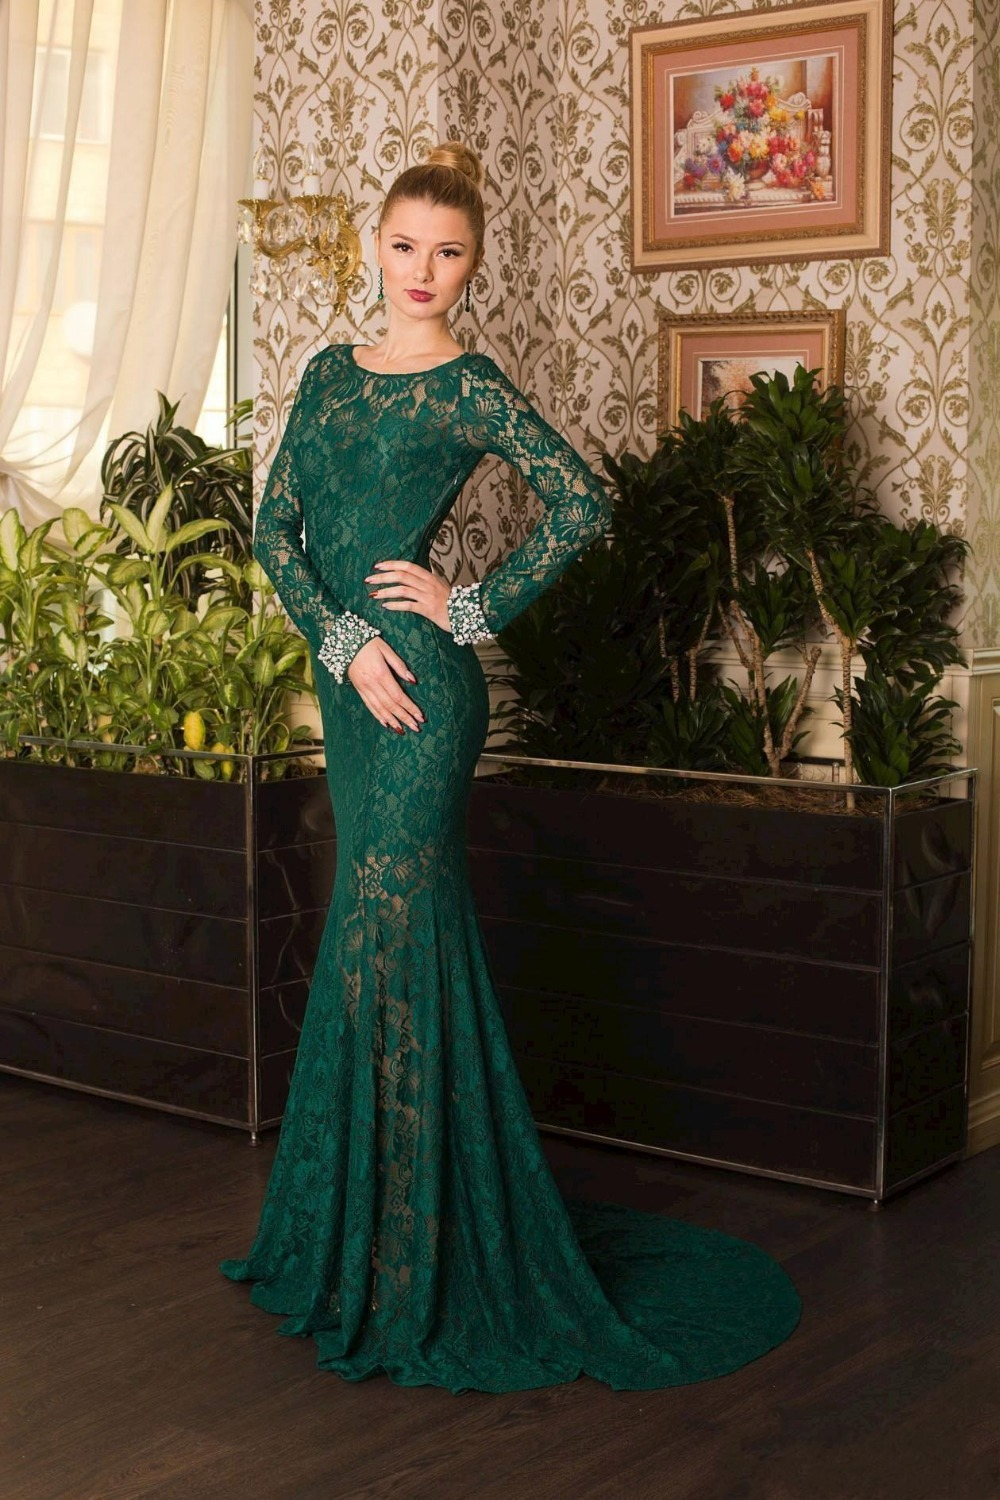 Dark Green Prom Dresses With Sleeves - Missy Dress